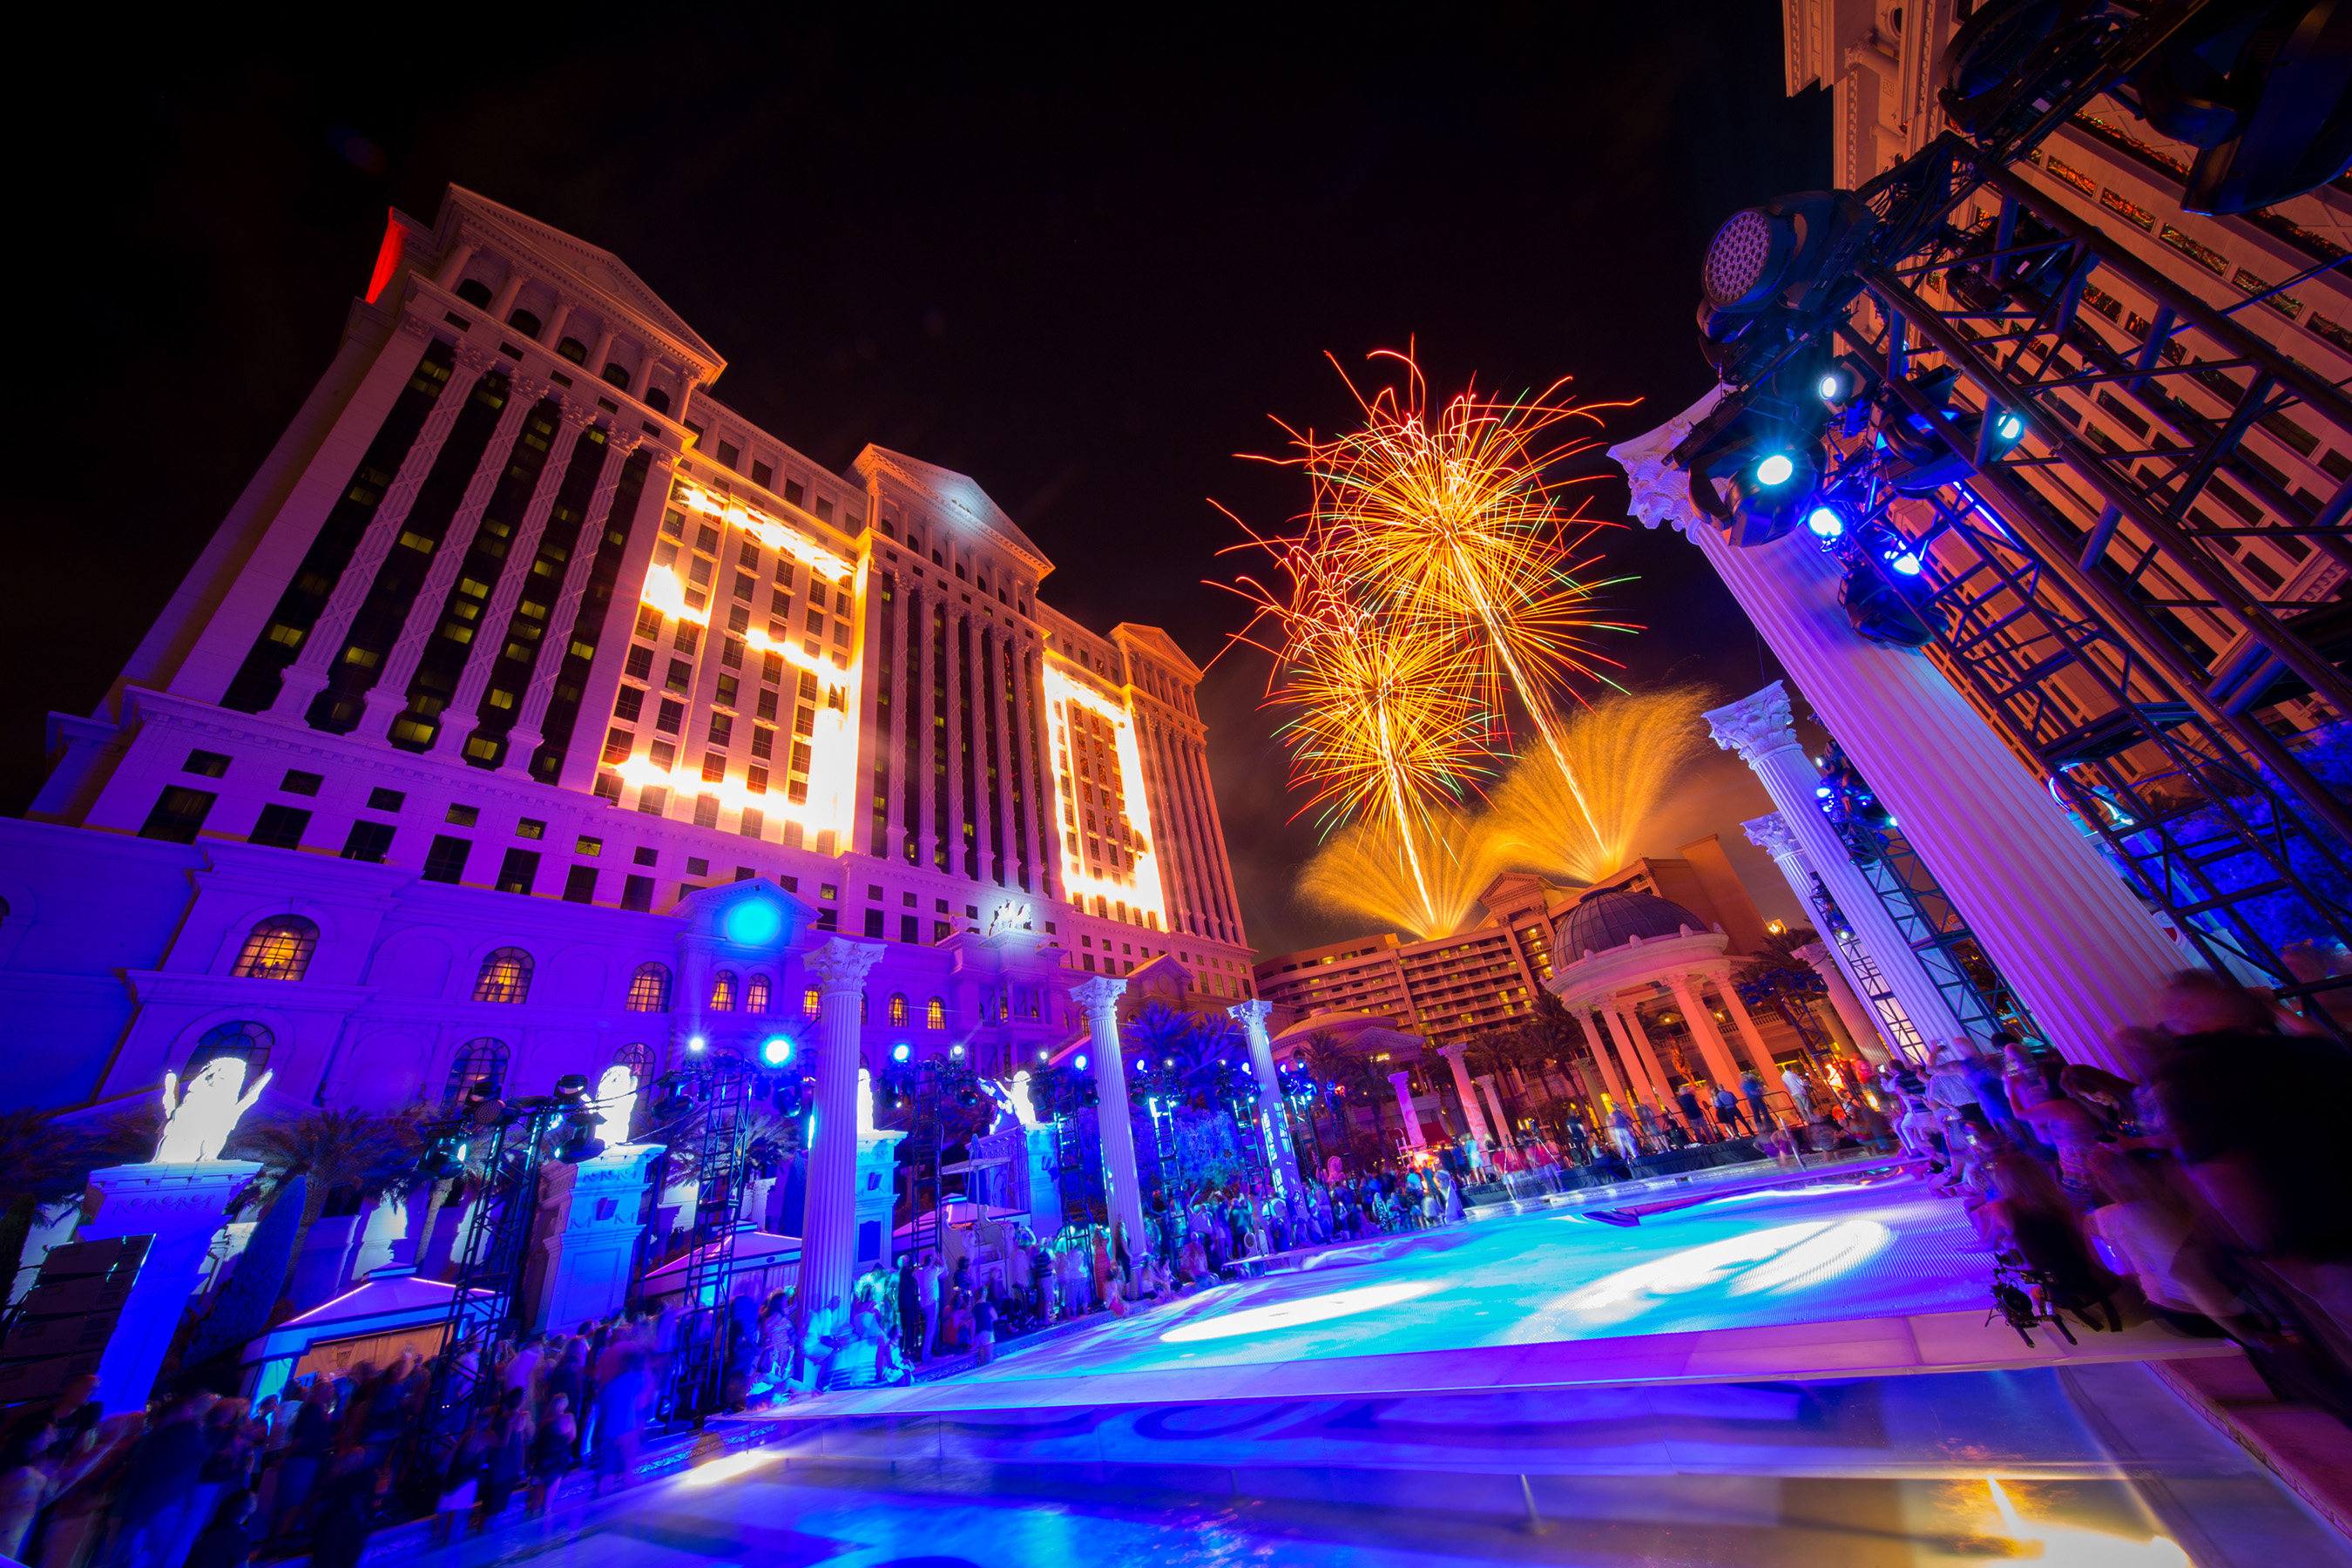 Caesars Palace Celebrates 50th Birthday with Pool Party Hosted by Gordon Ramsay, Five-Tier Birthday Cake, Cocktail Competition and Fireworks Extravaganza on Friday, Aug. 5. Photo Credit: Erik Kabik